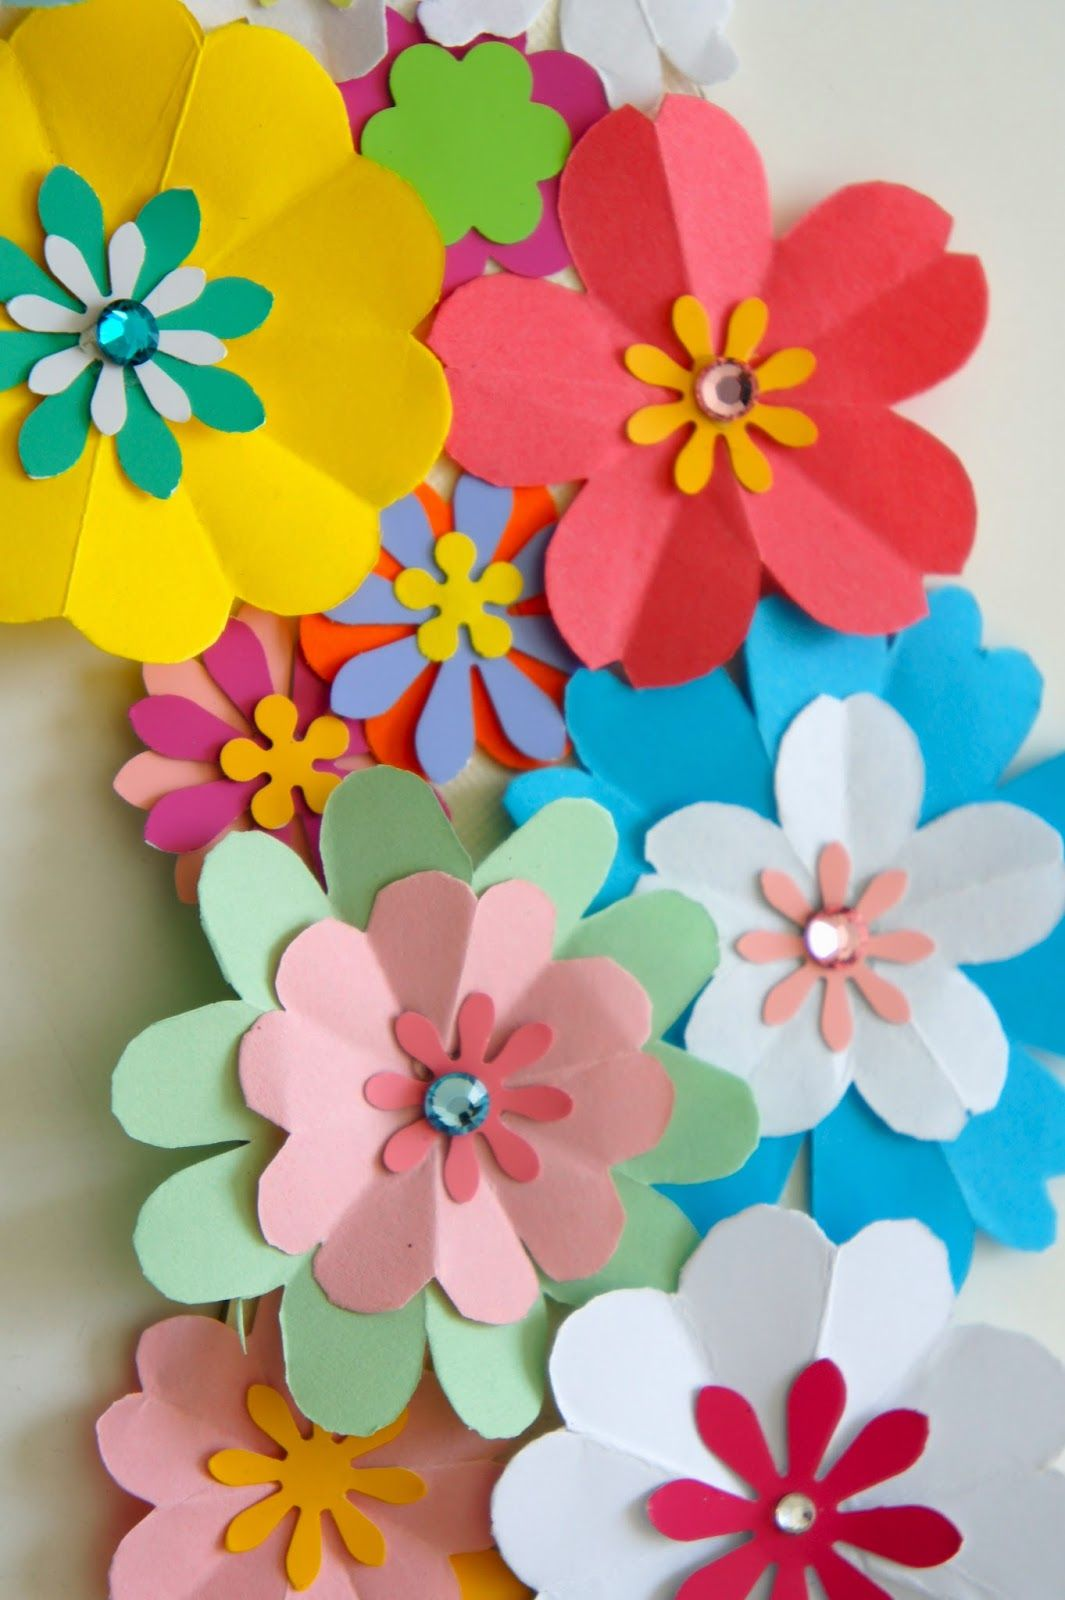 Ideas From The Forest Wreath Of Paper Flowers Flower Crafts